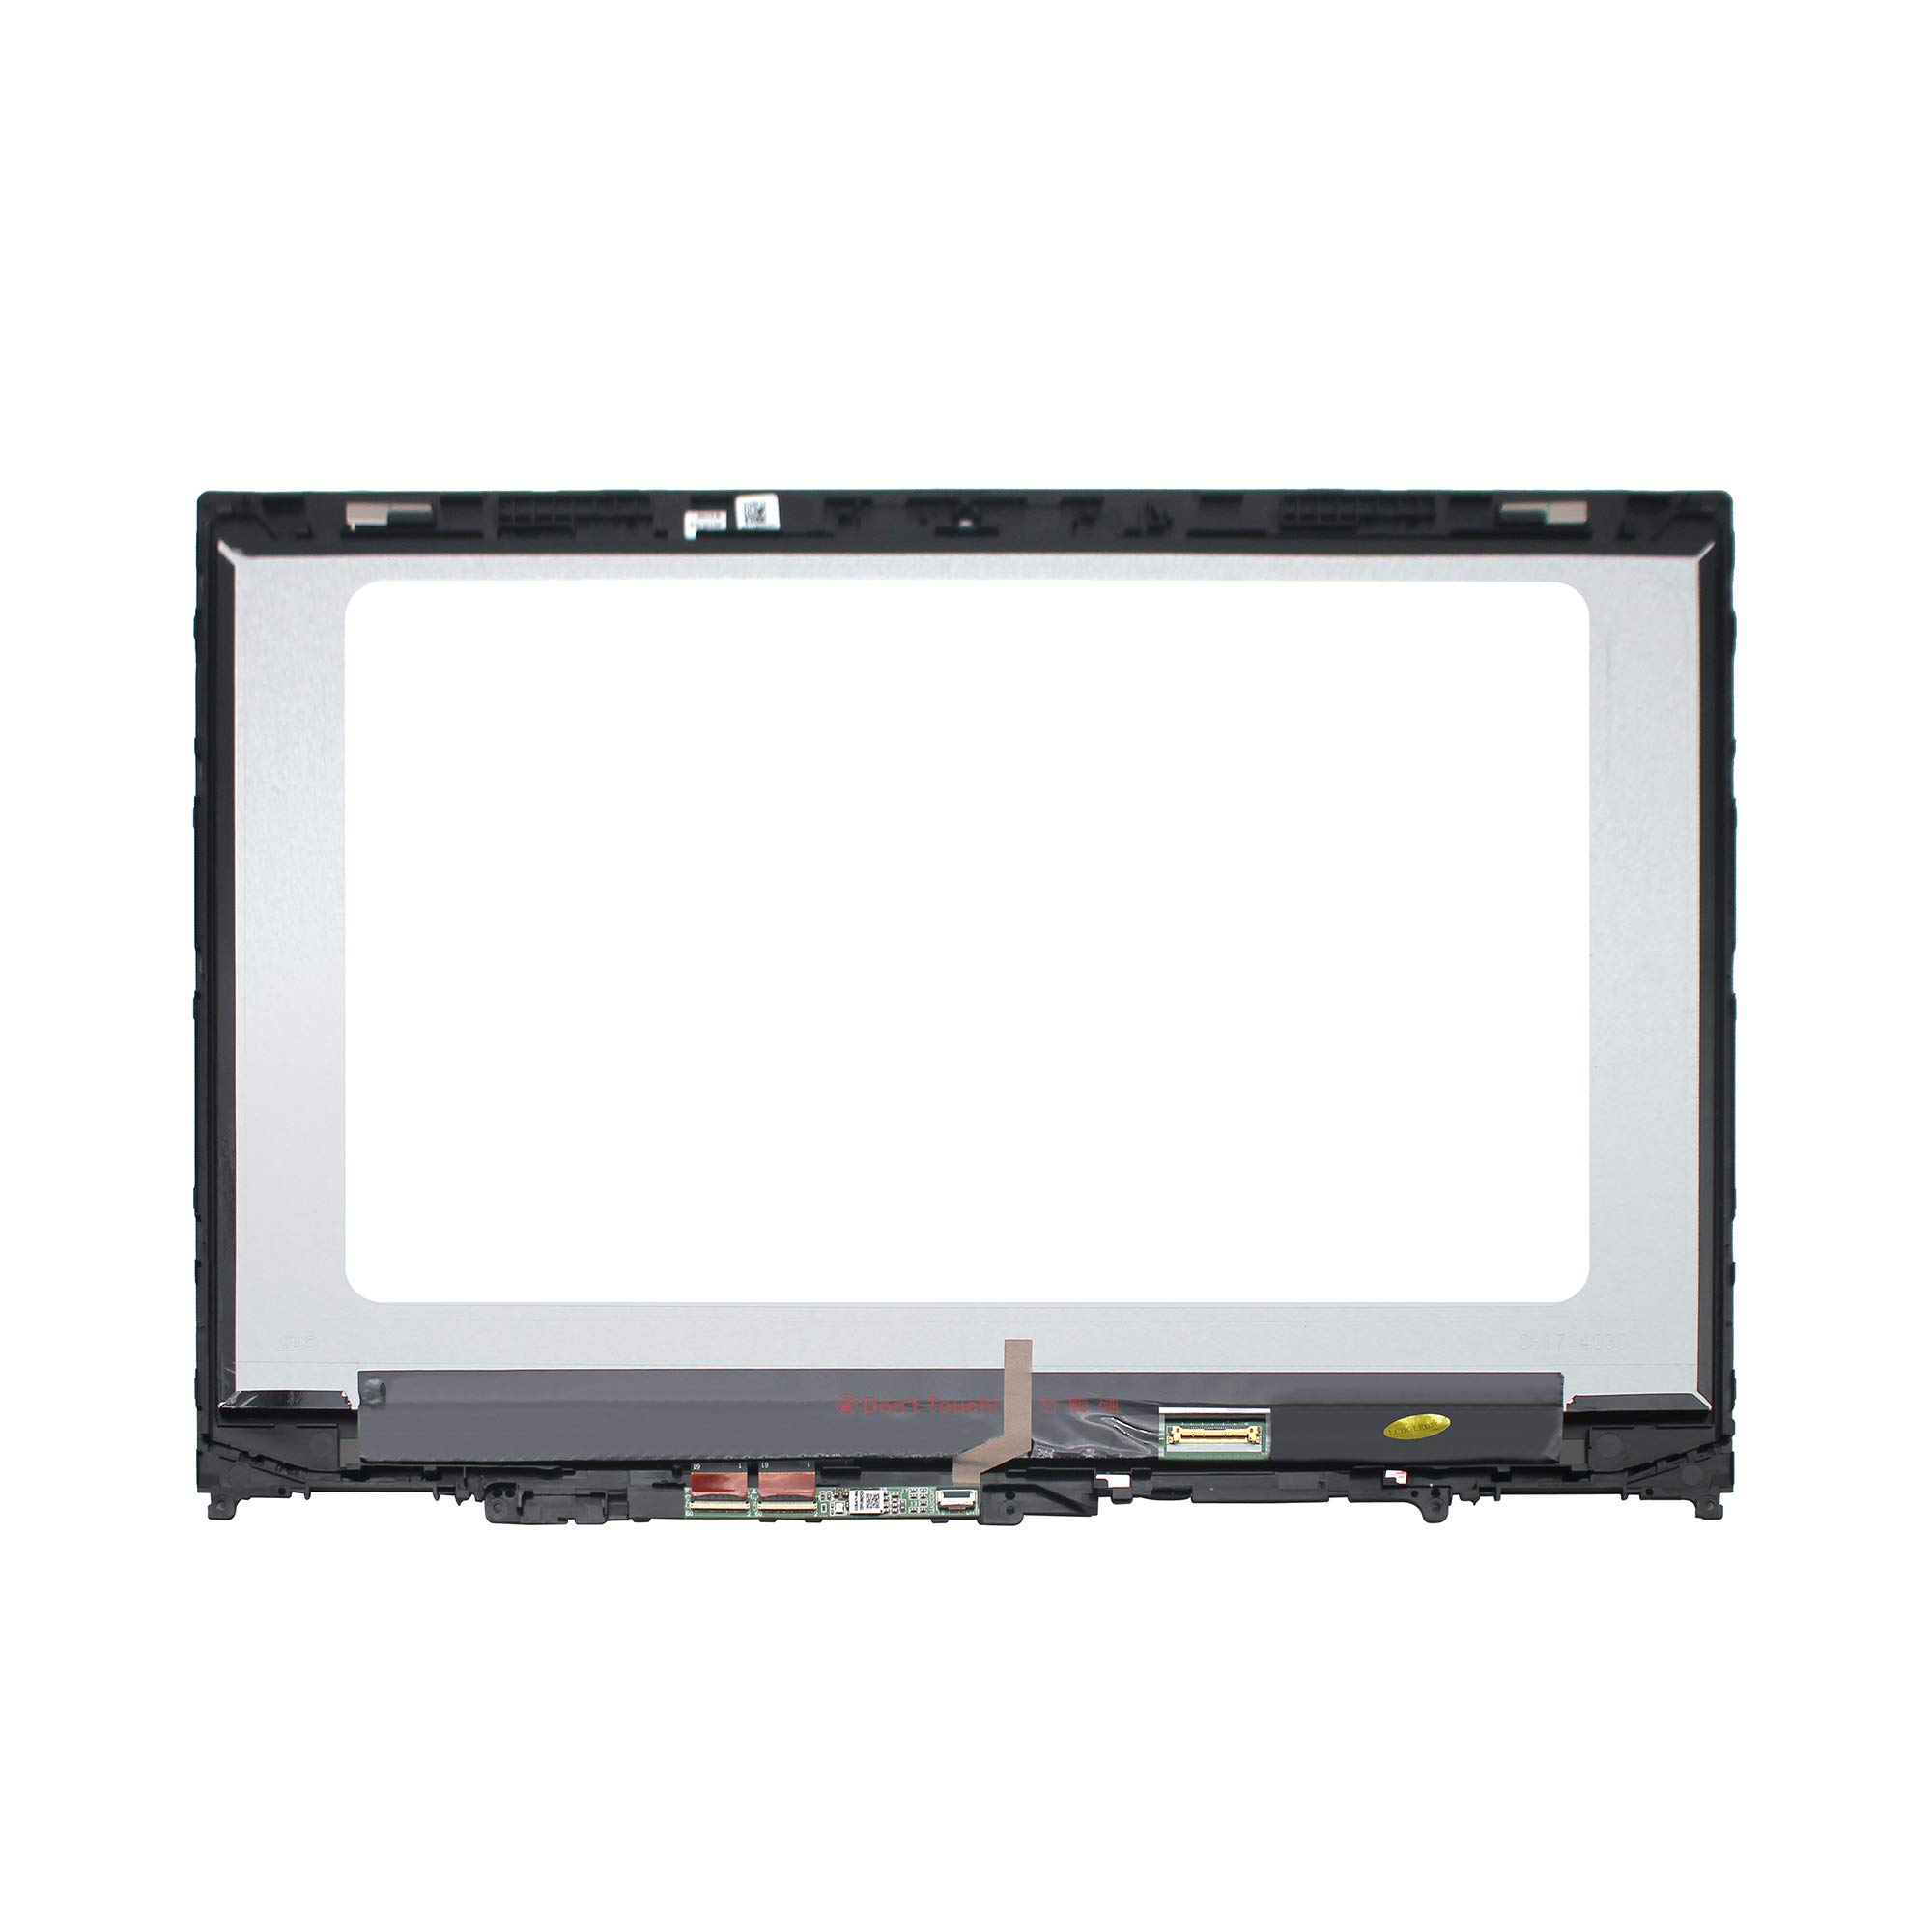 LCDOLED Compatible 15.6'' FullHD 1080P IPS B156HAN02.1 LED LCD Display Touch Screen Digitizer Assembly + Bezel for Lenovo Flex 5-15 5-1570 80XB 81CA 81CA0008US 81CA0009US 80XB0008US (W/Board) by LCDOLED (Image #2)